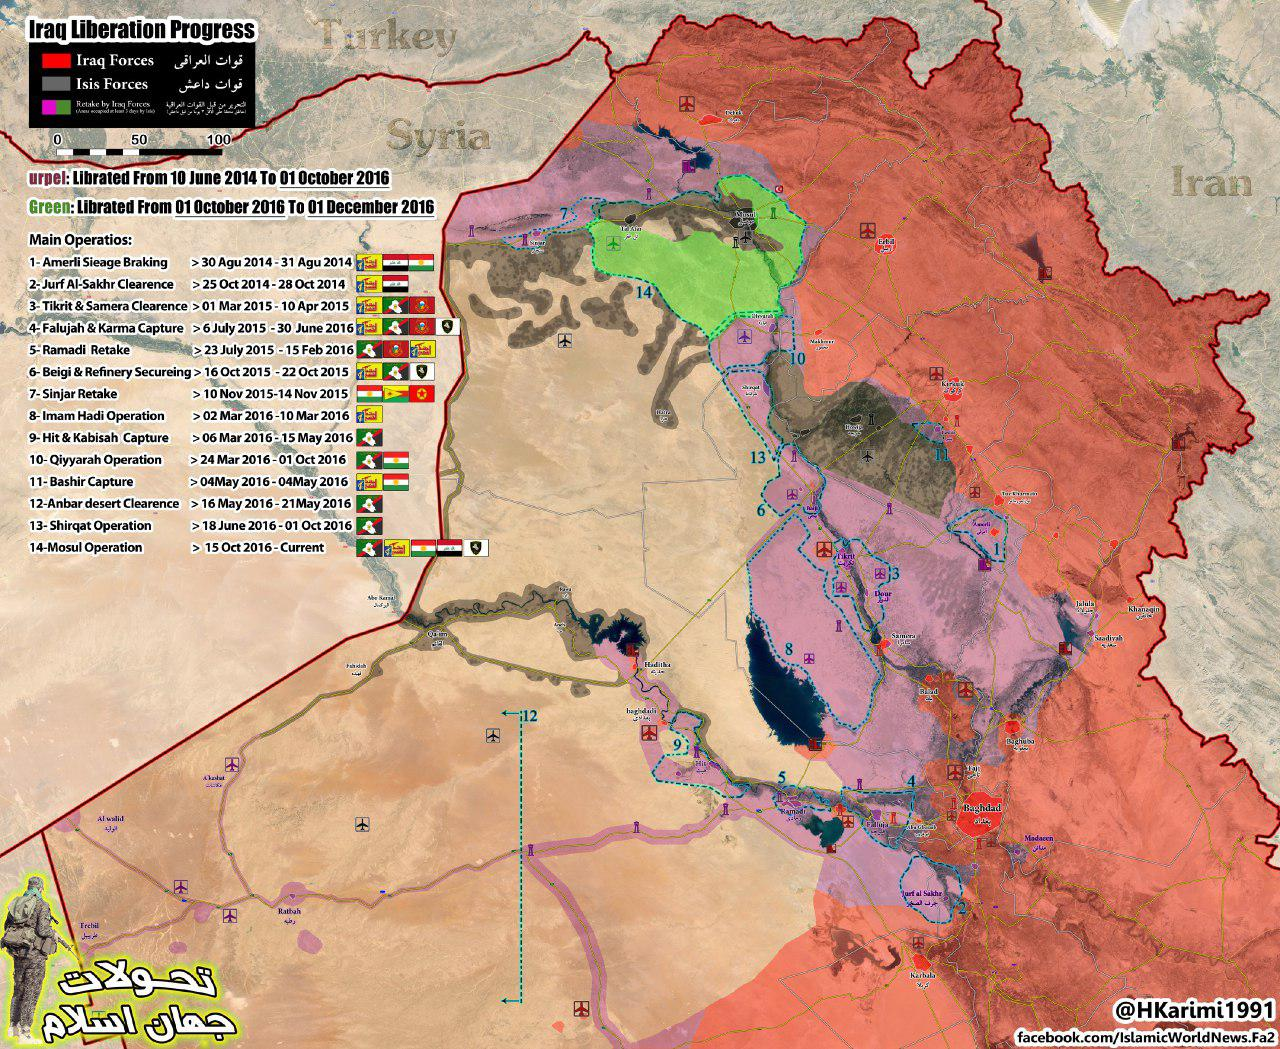 an argument in favor of national liberation in iraq and the departure of us led forces